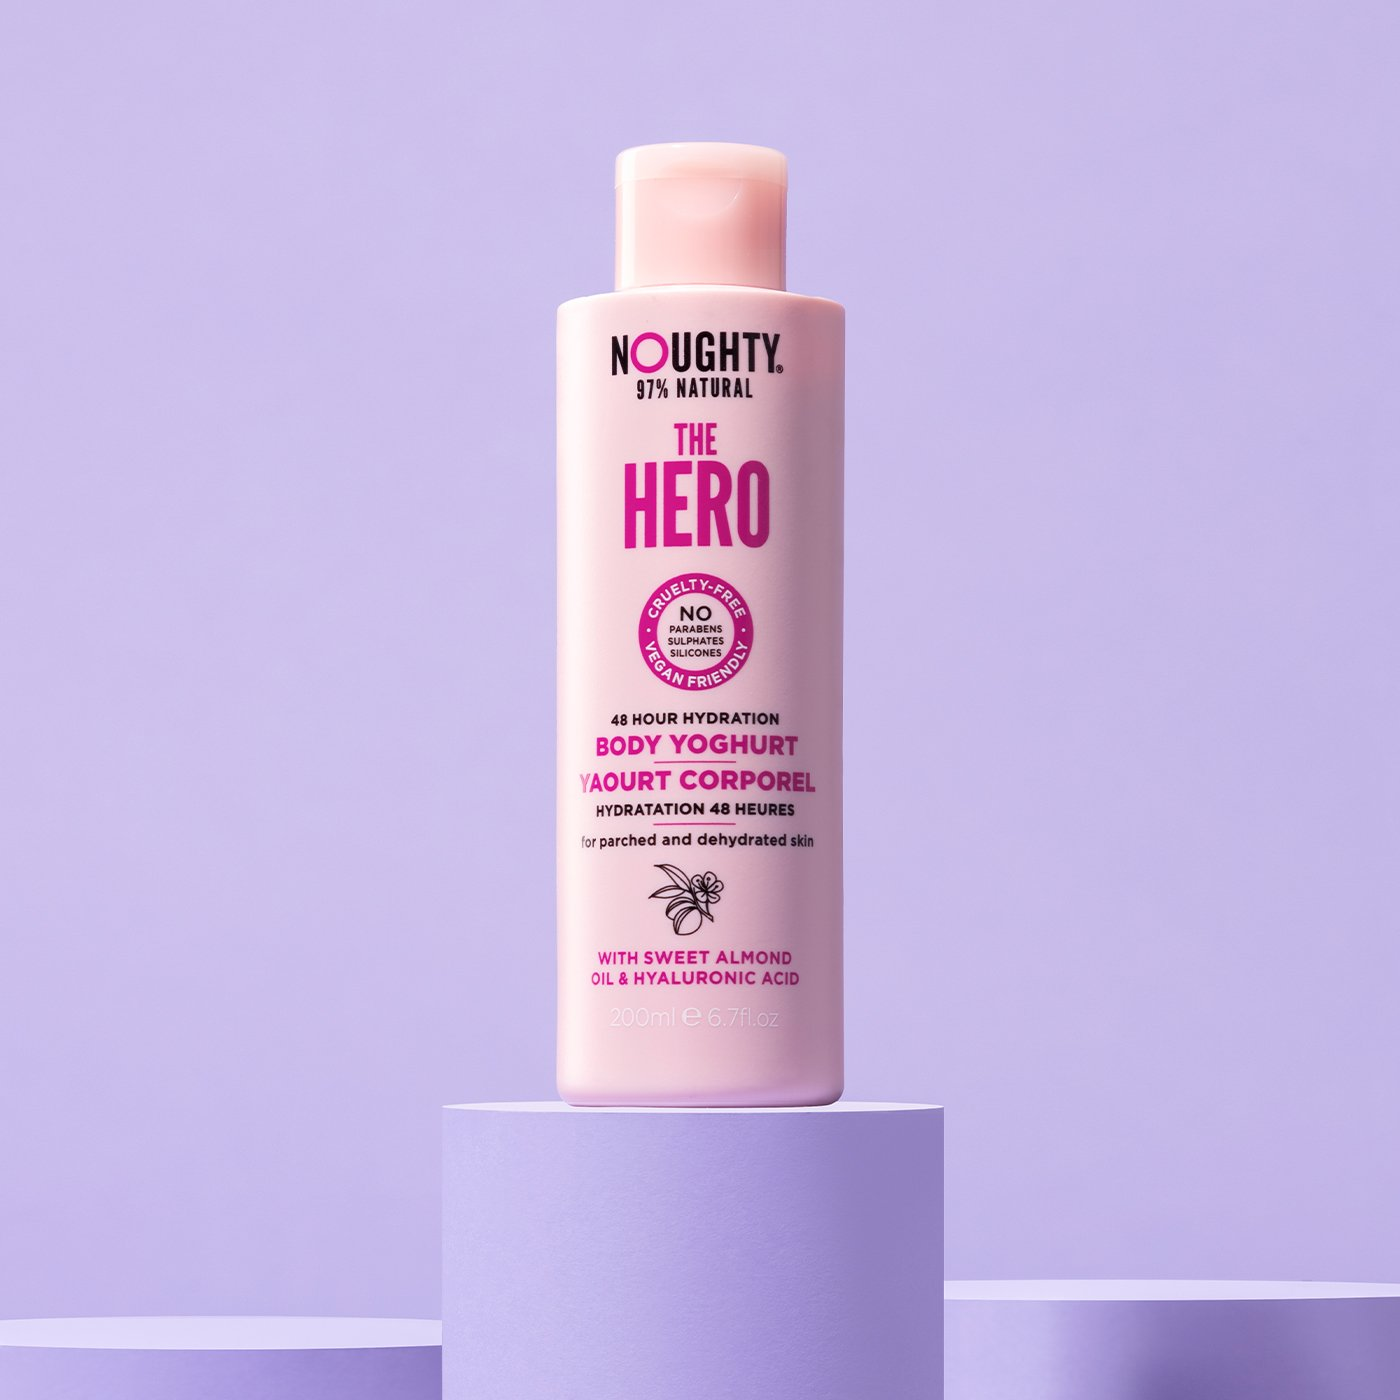 Noughty The Hero 48 hour hydrating body yoghurt for parched and dehydrated skin. Natural body care vegan cruelty free natural sulfate free paraben free